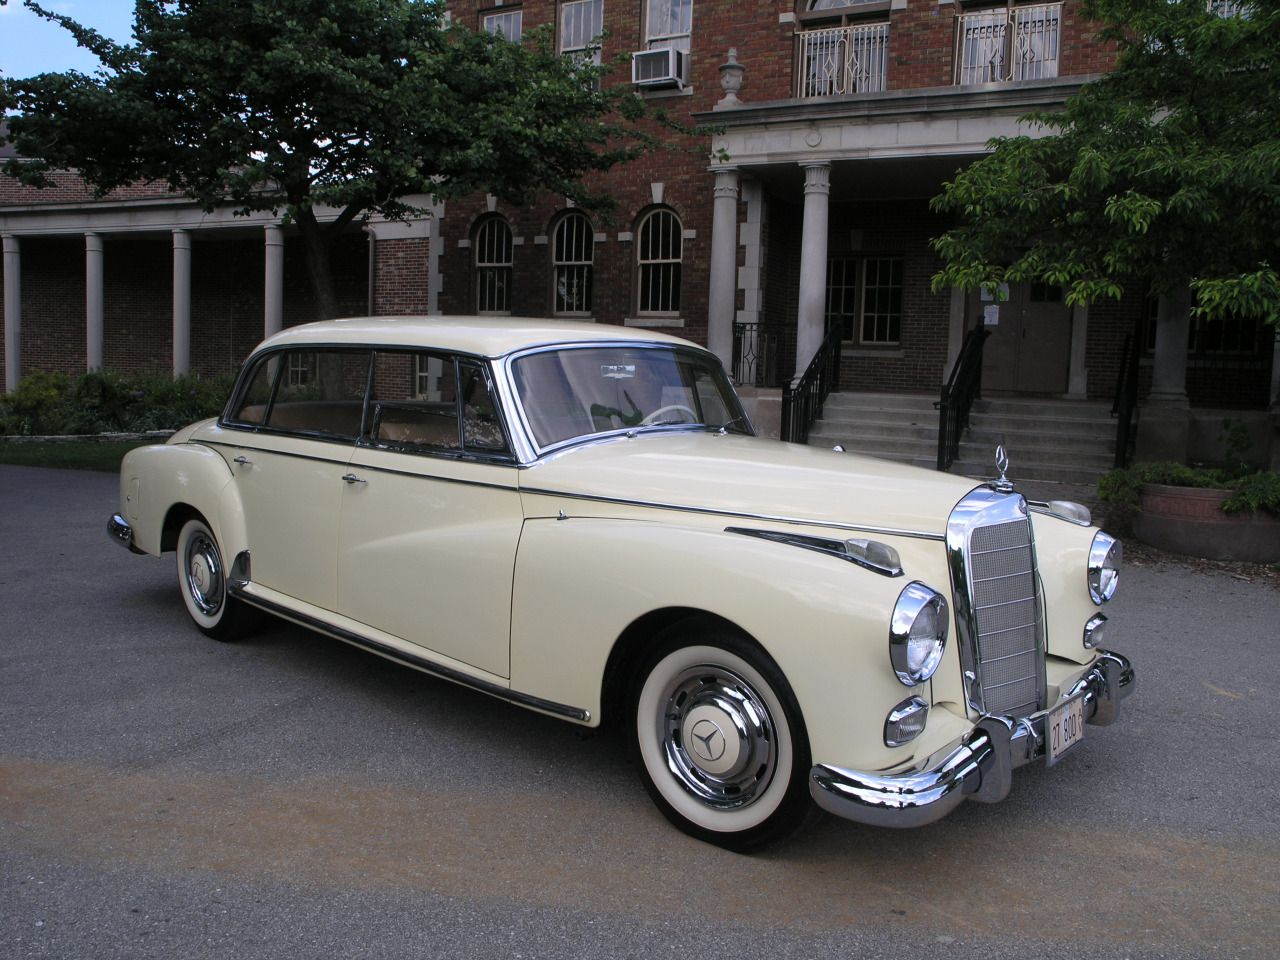 German-cars-after-1945: 1960 Mercedes 300 D Www.german